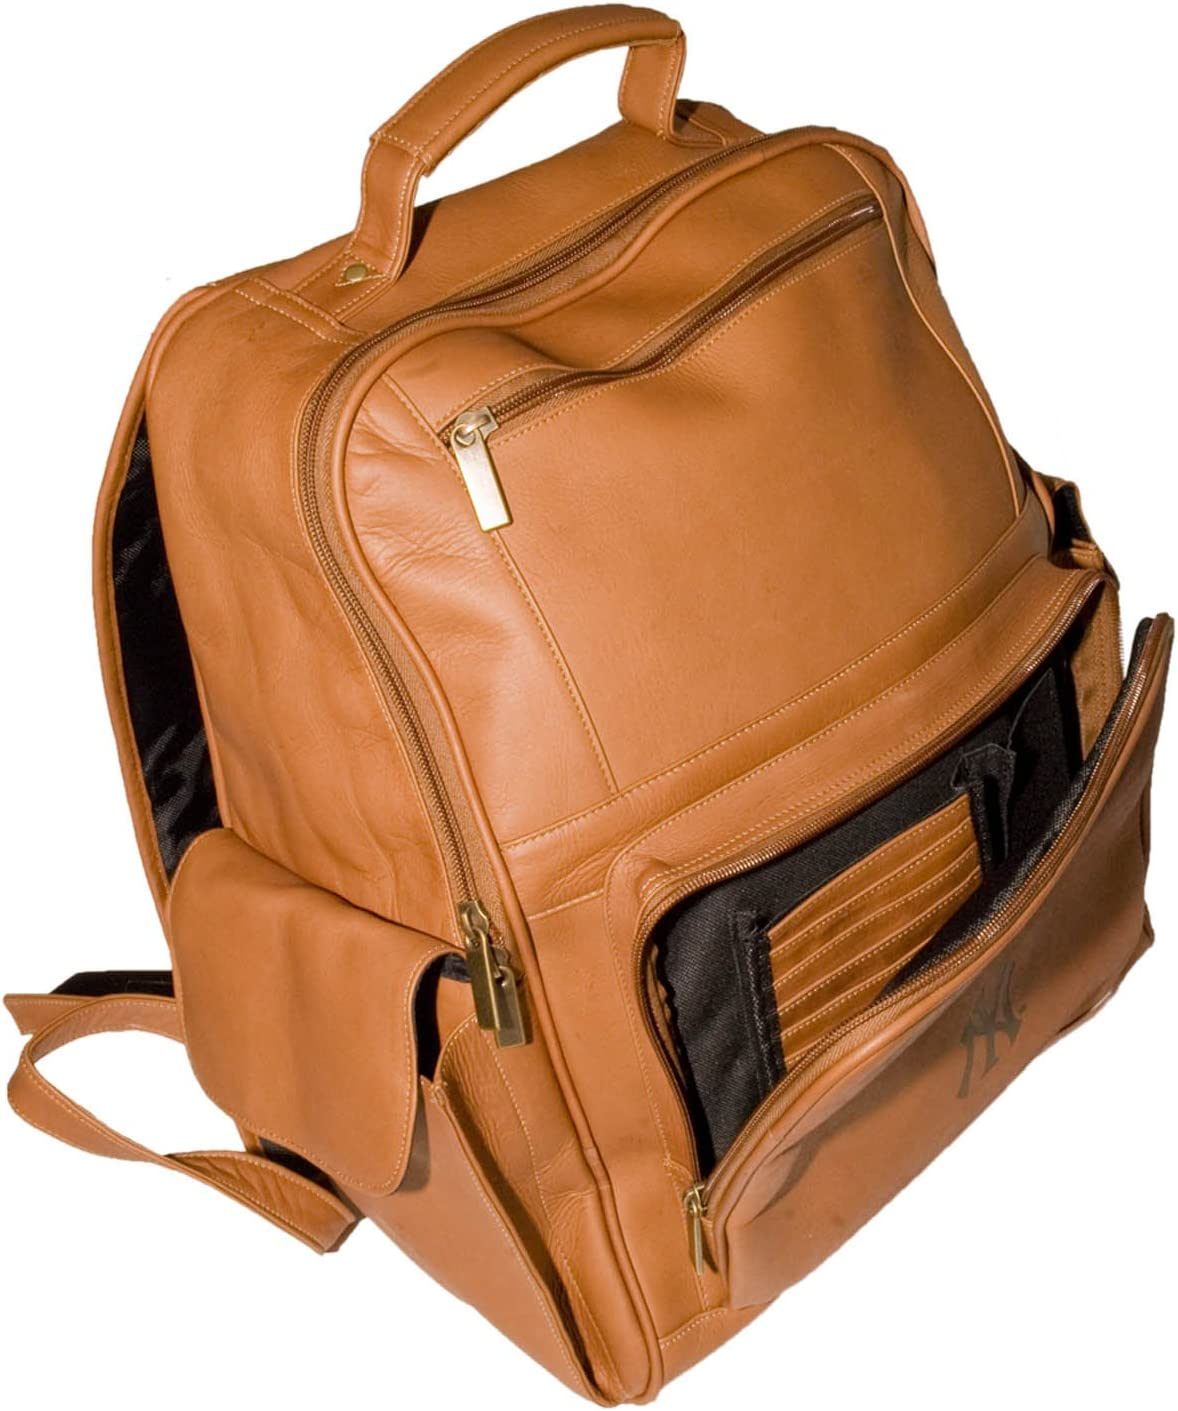 NCAA Michigan State Spartans Tan Leather Large Computer Backpack